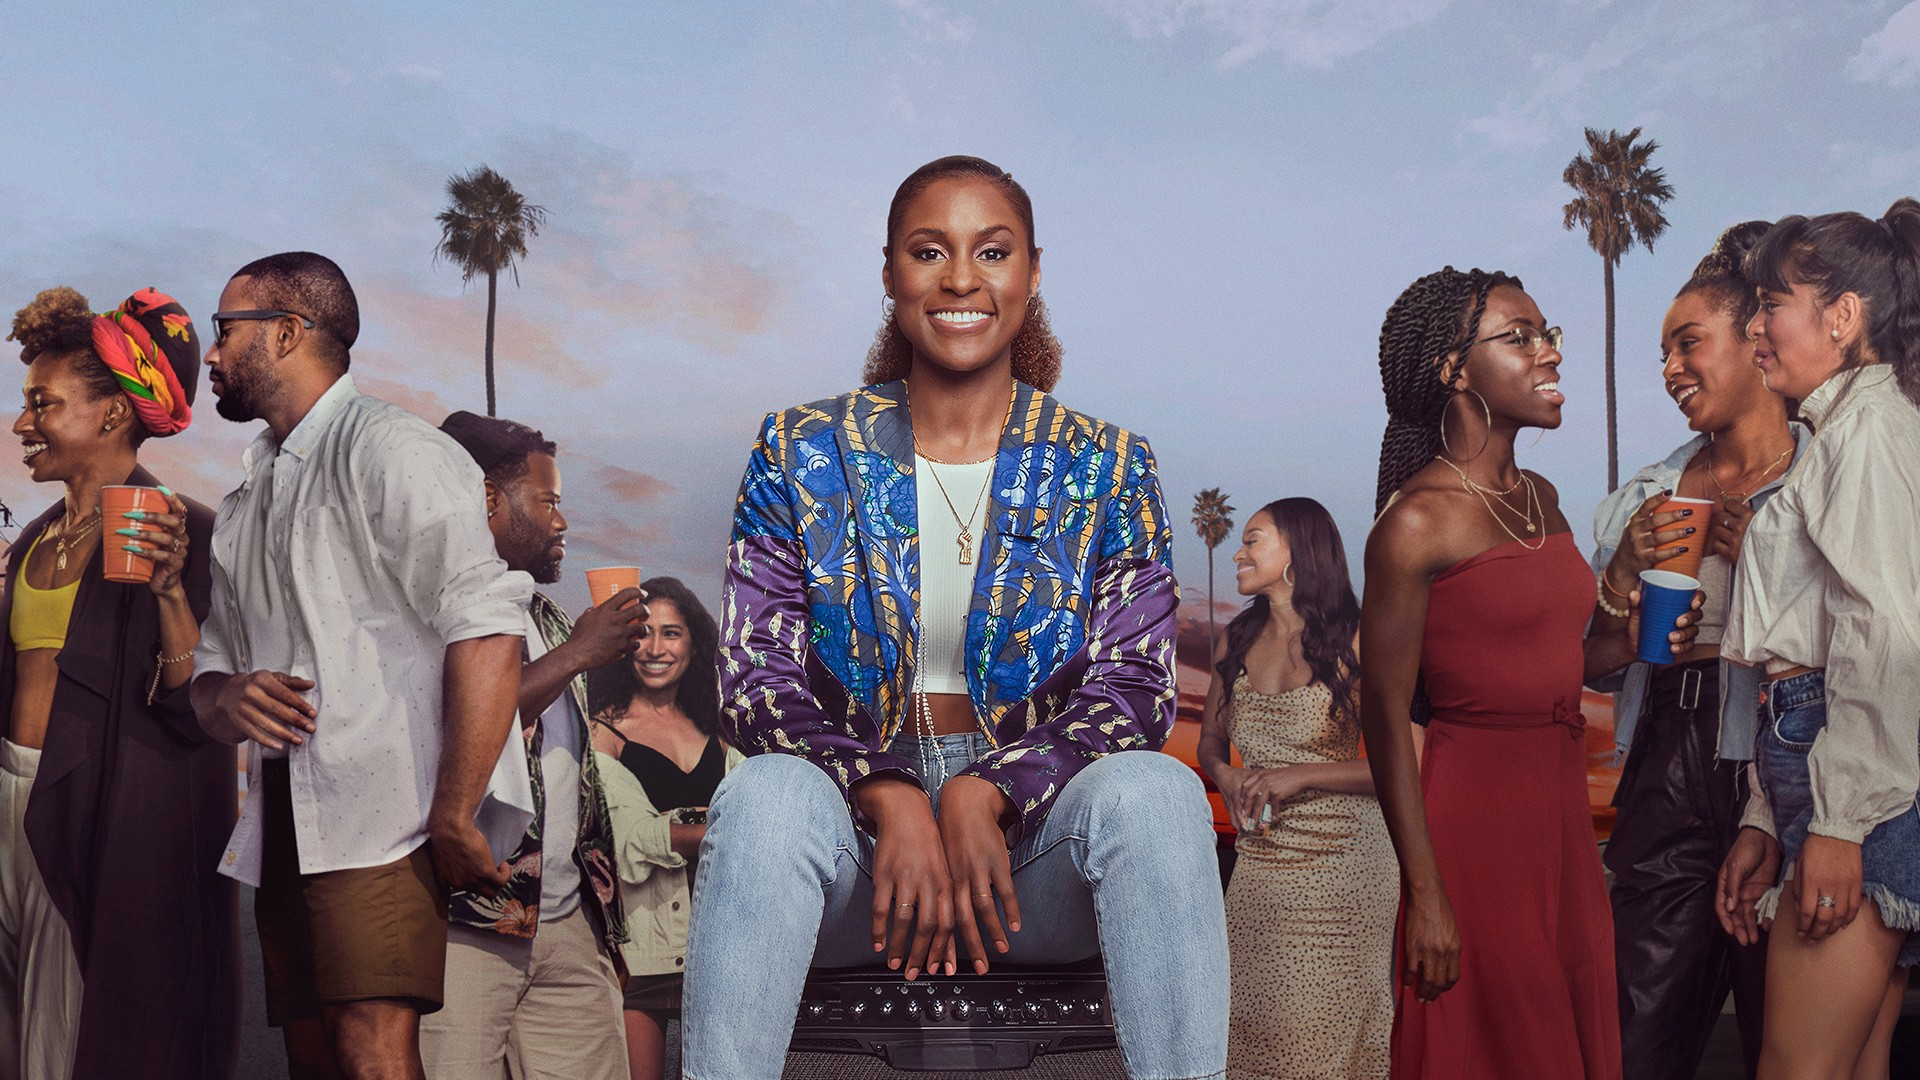 Watching Insecure just makes it all feel better